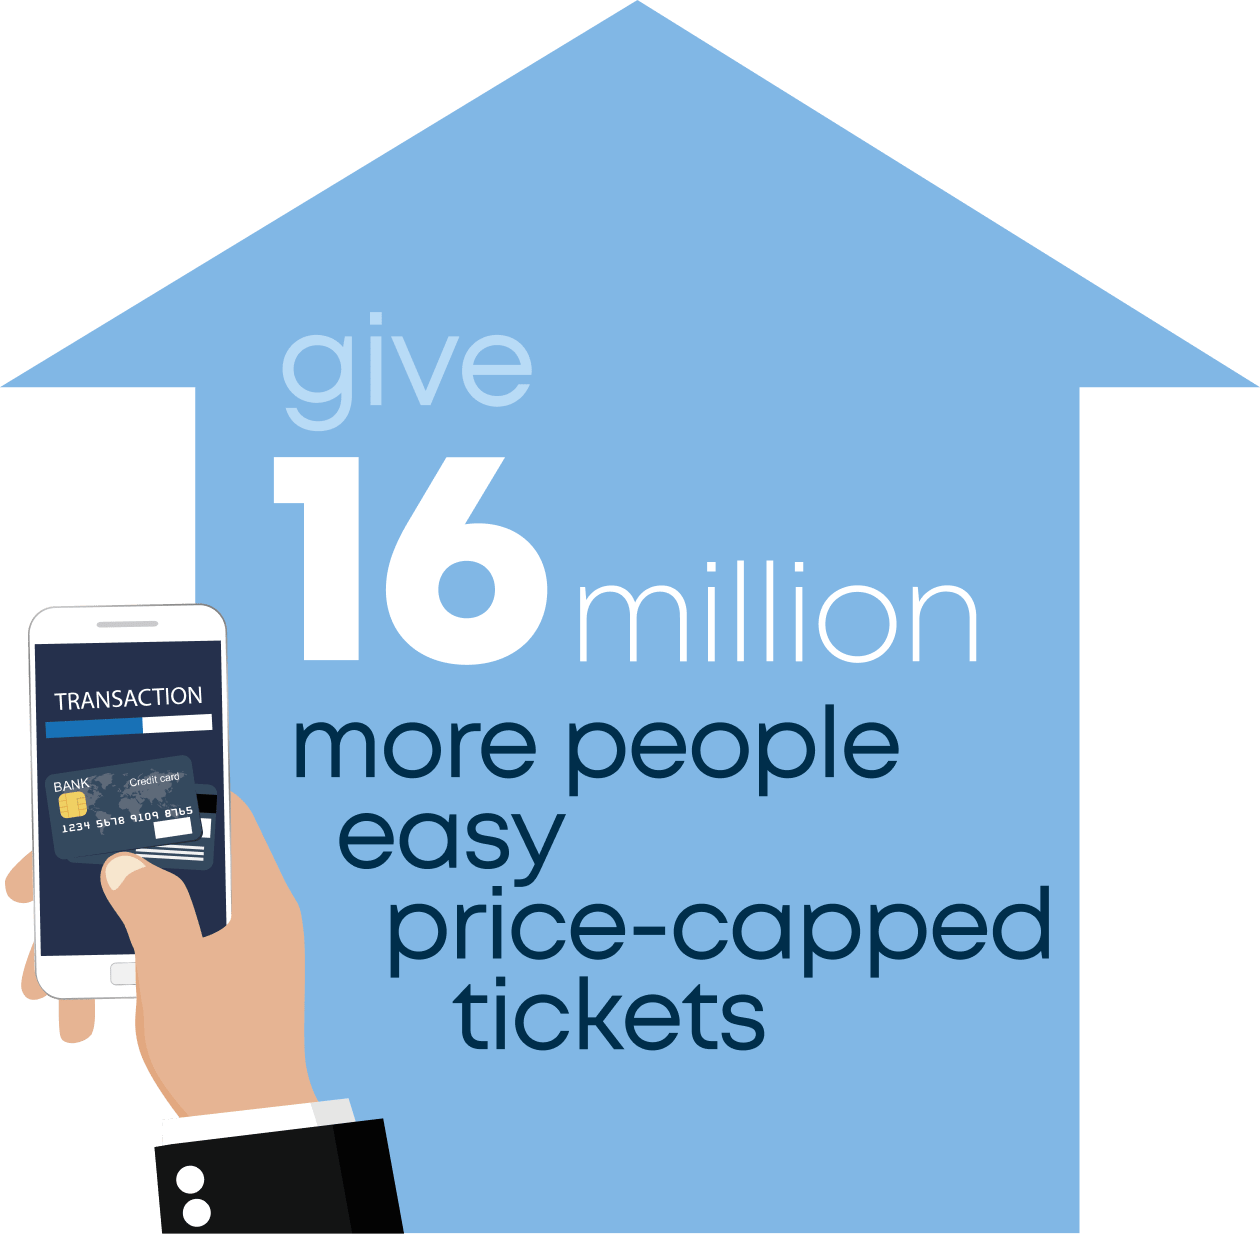 give 16 million more people easy price-capped tickets